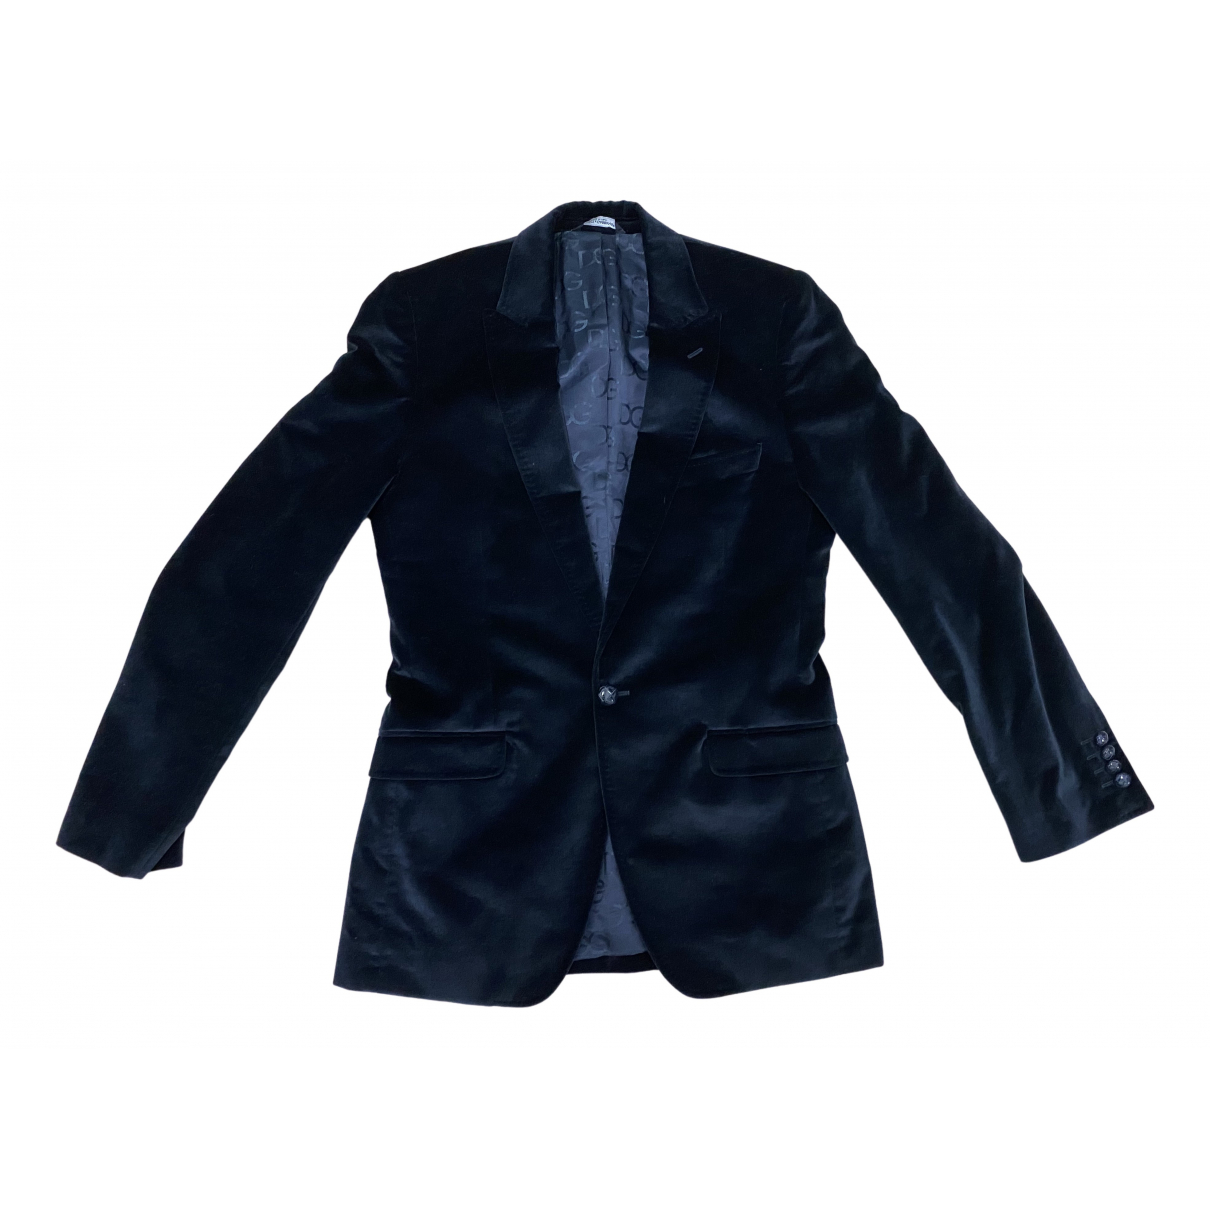 Dolce & Gabbana N Navy Velvet jacket  for Men L International